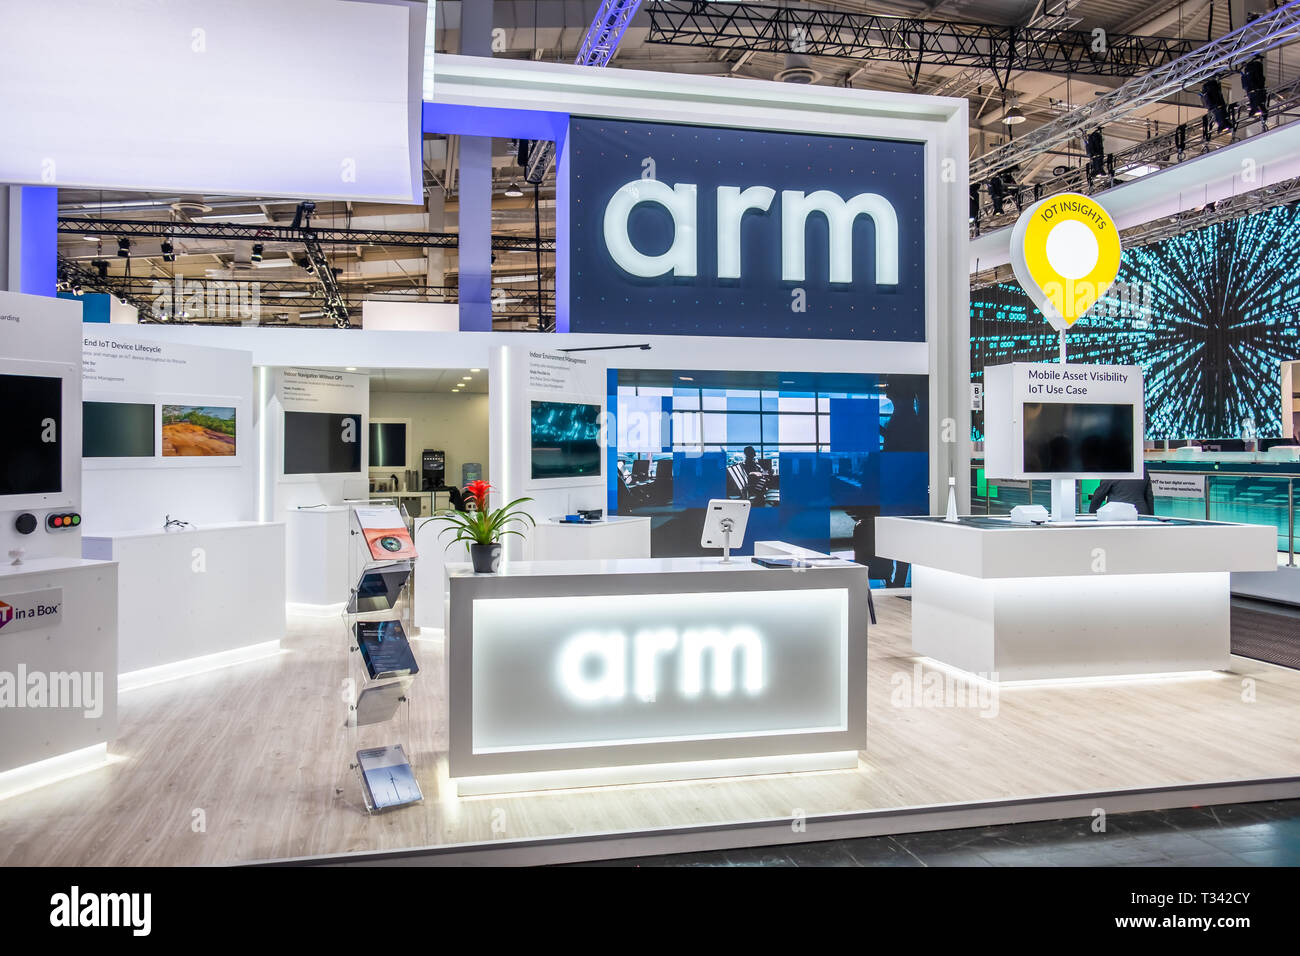 HANNOVER / GERMANY - APRIL 02 2019 : Arm is displaying new innovations at the Hannover Messe. - Stock Image